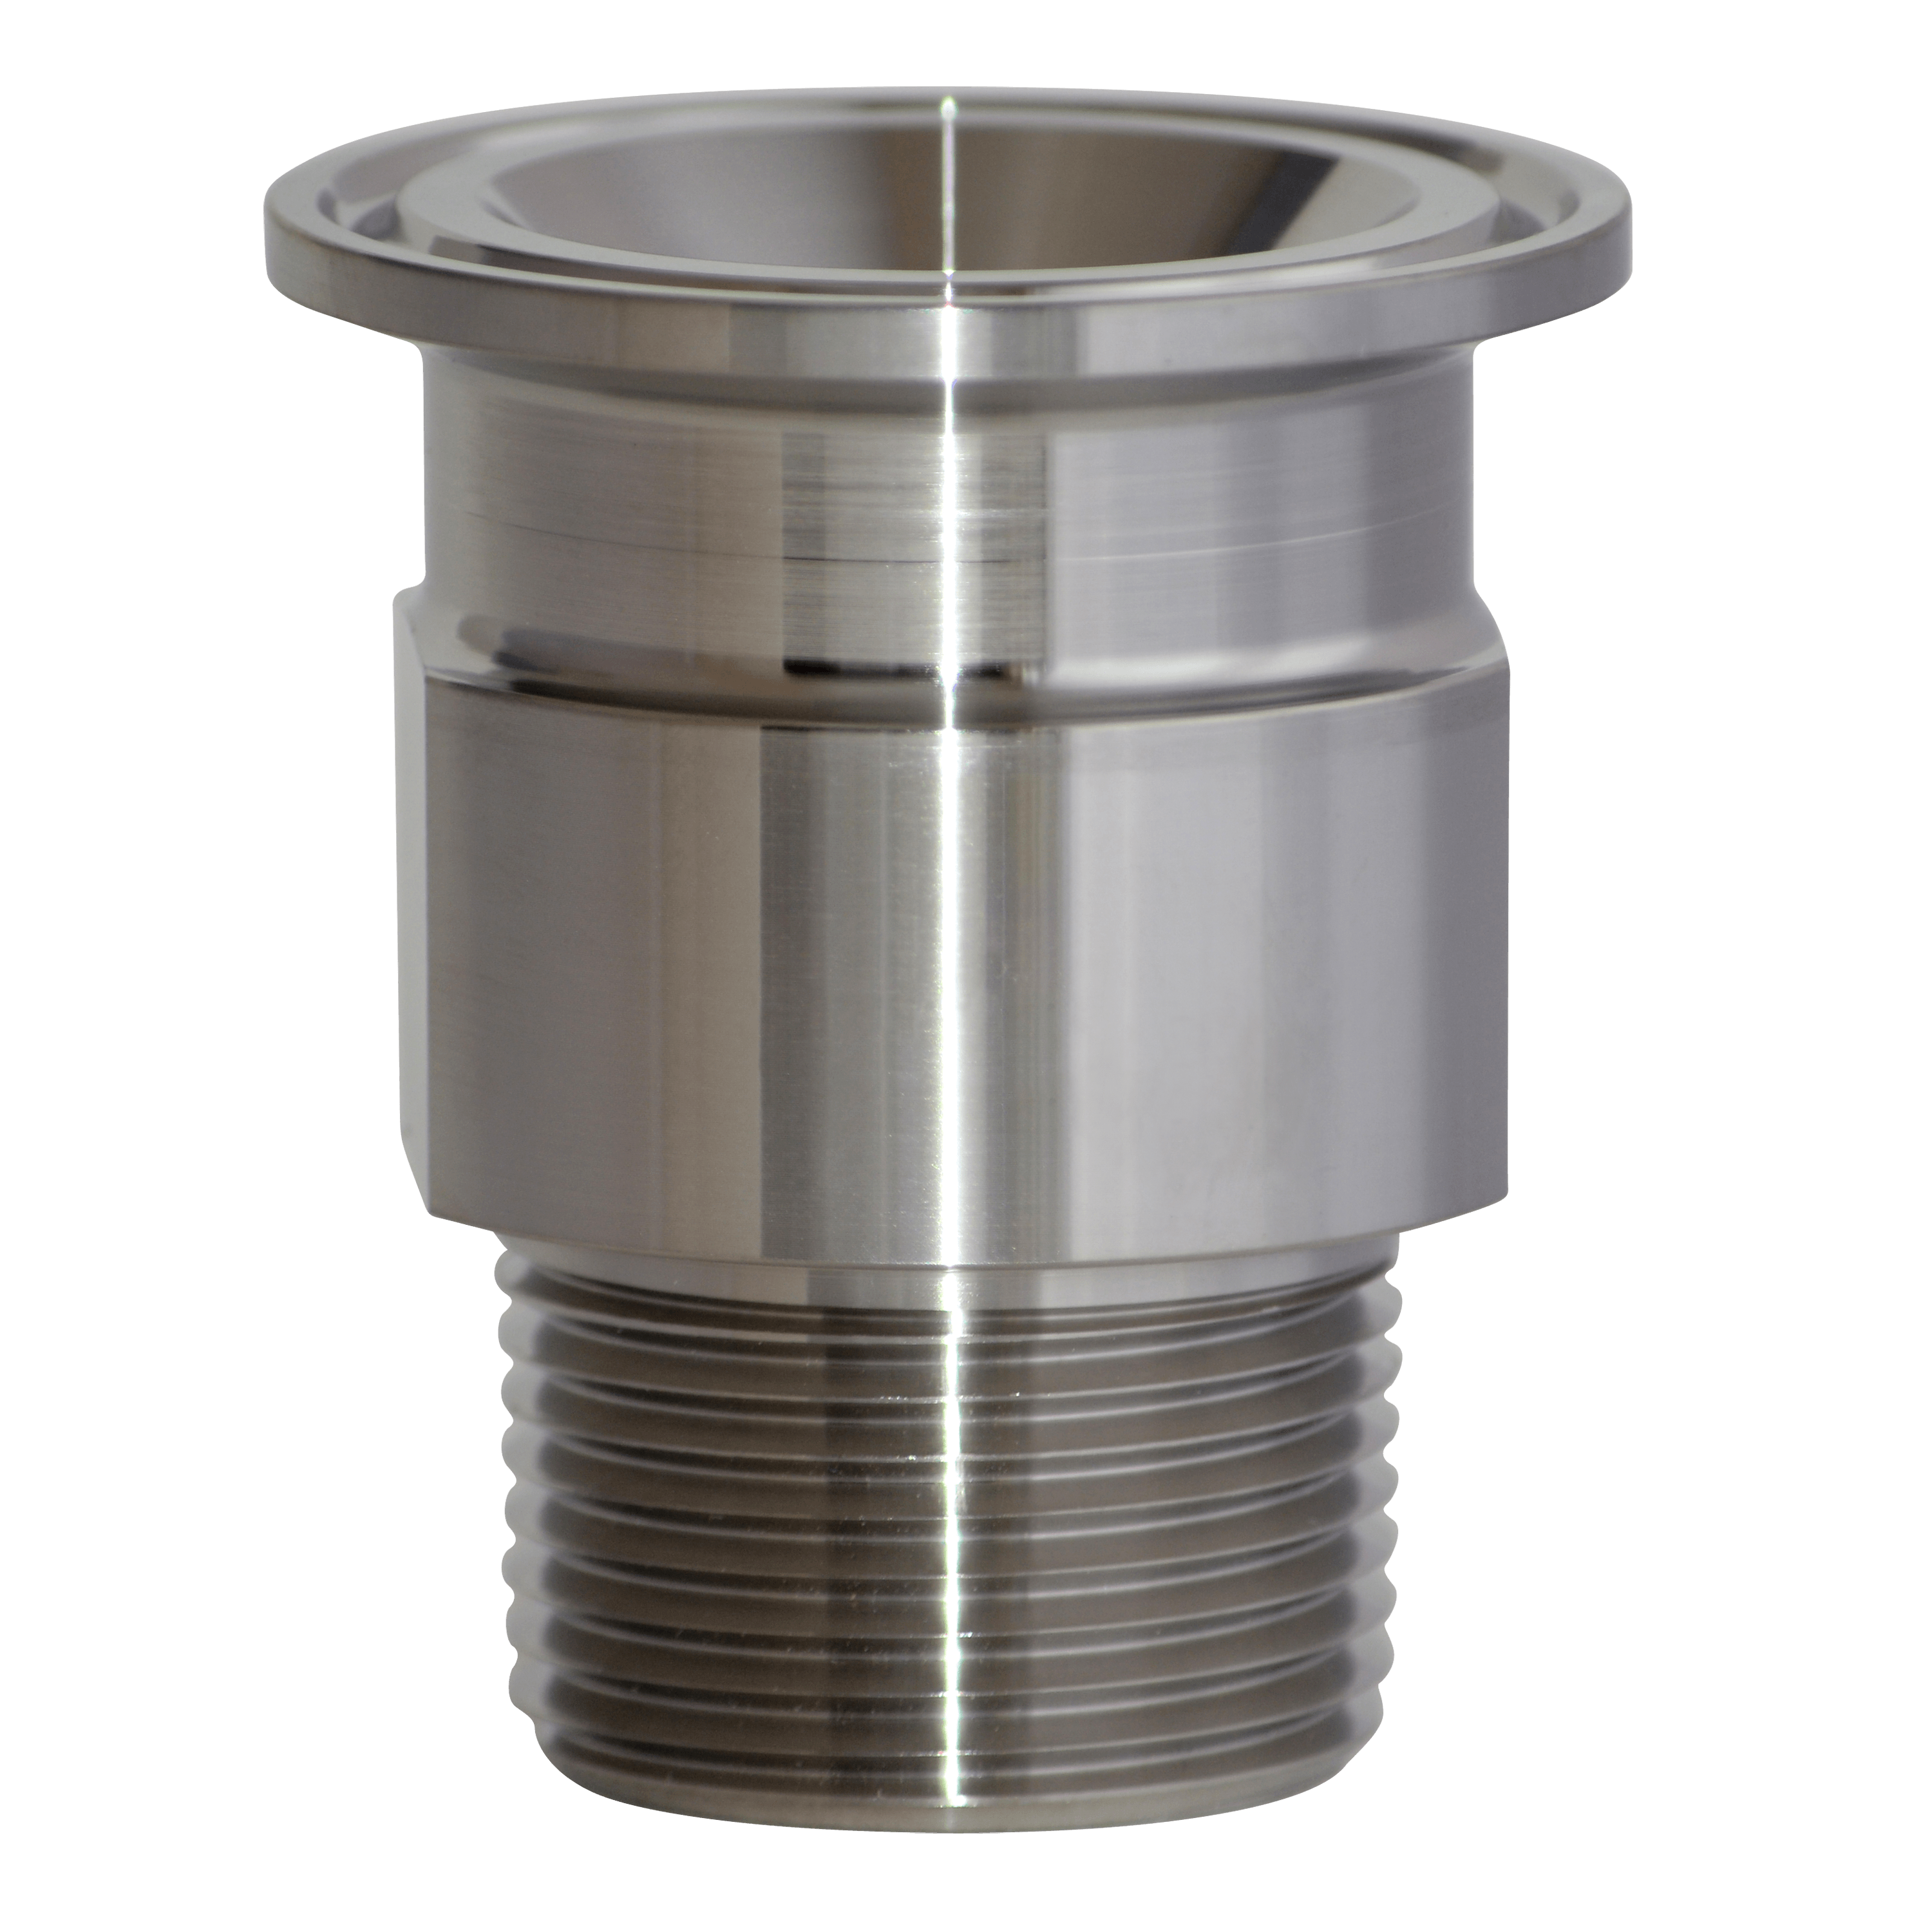 Stainless Steel Sanitary Fittings & Clamps – Top Line Process